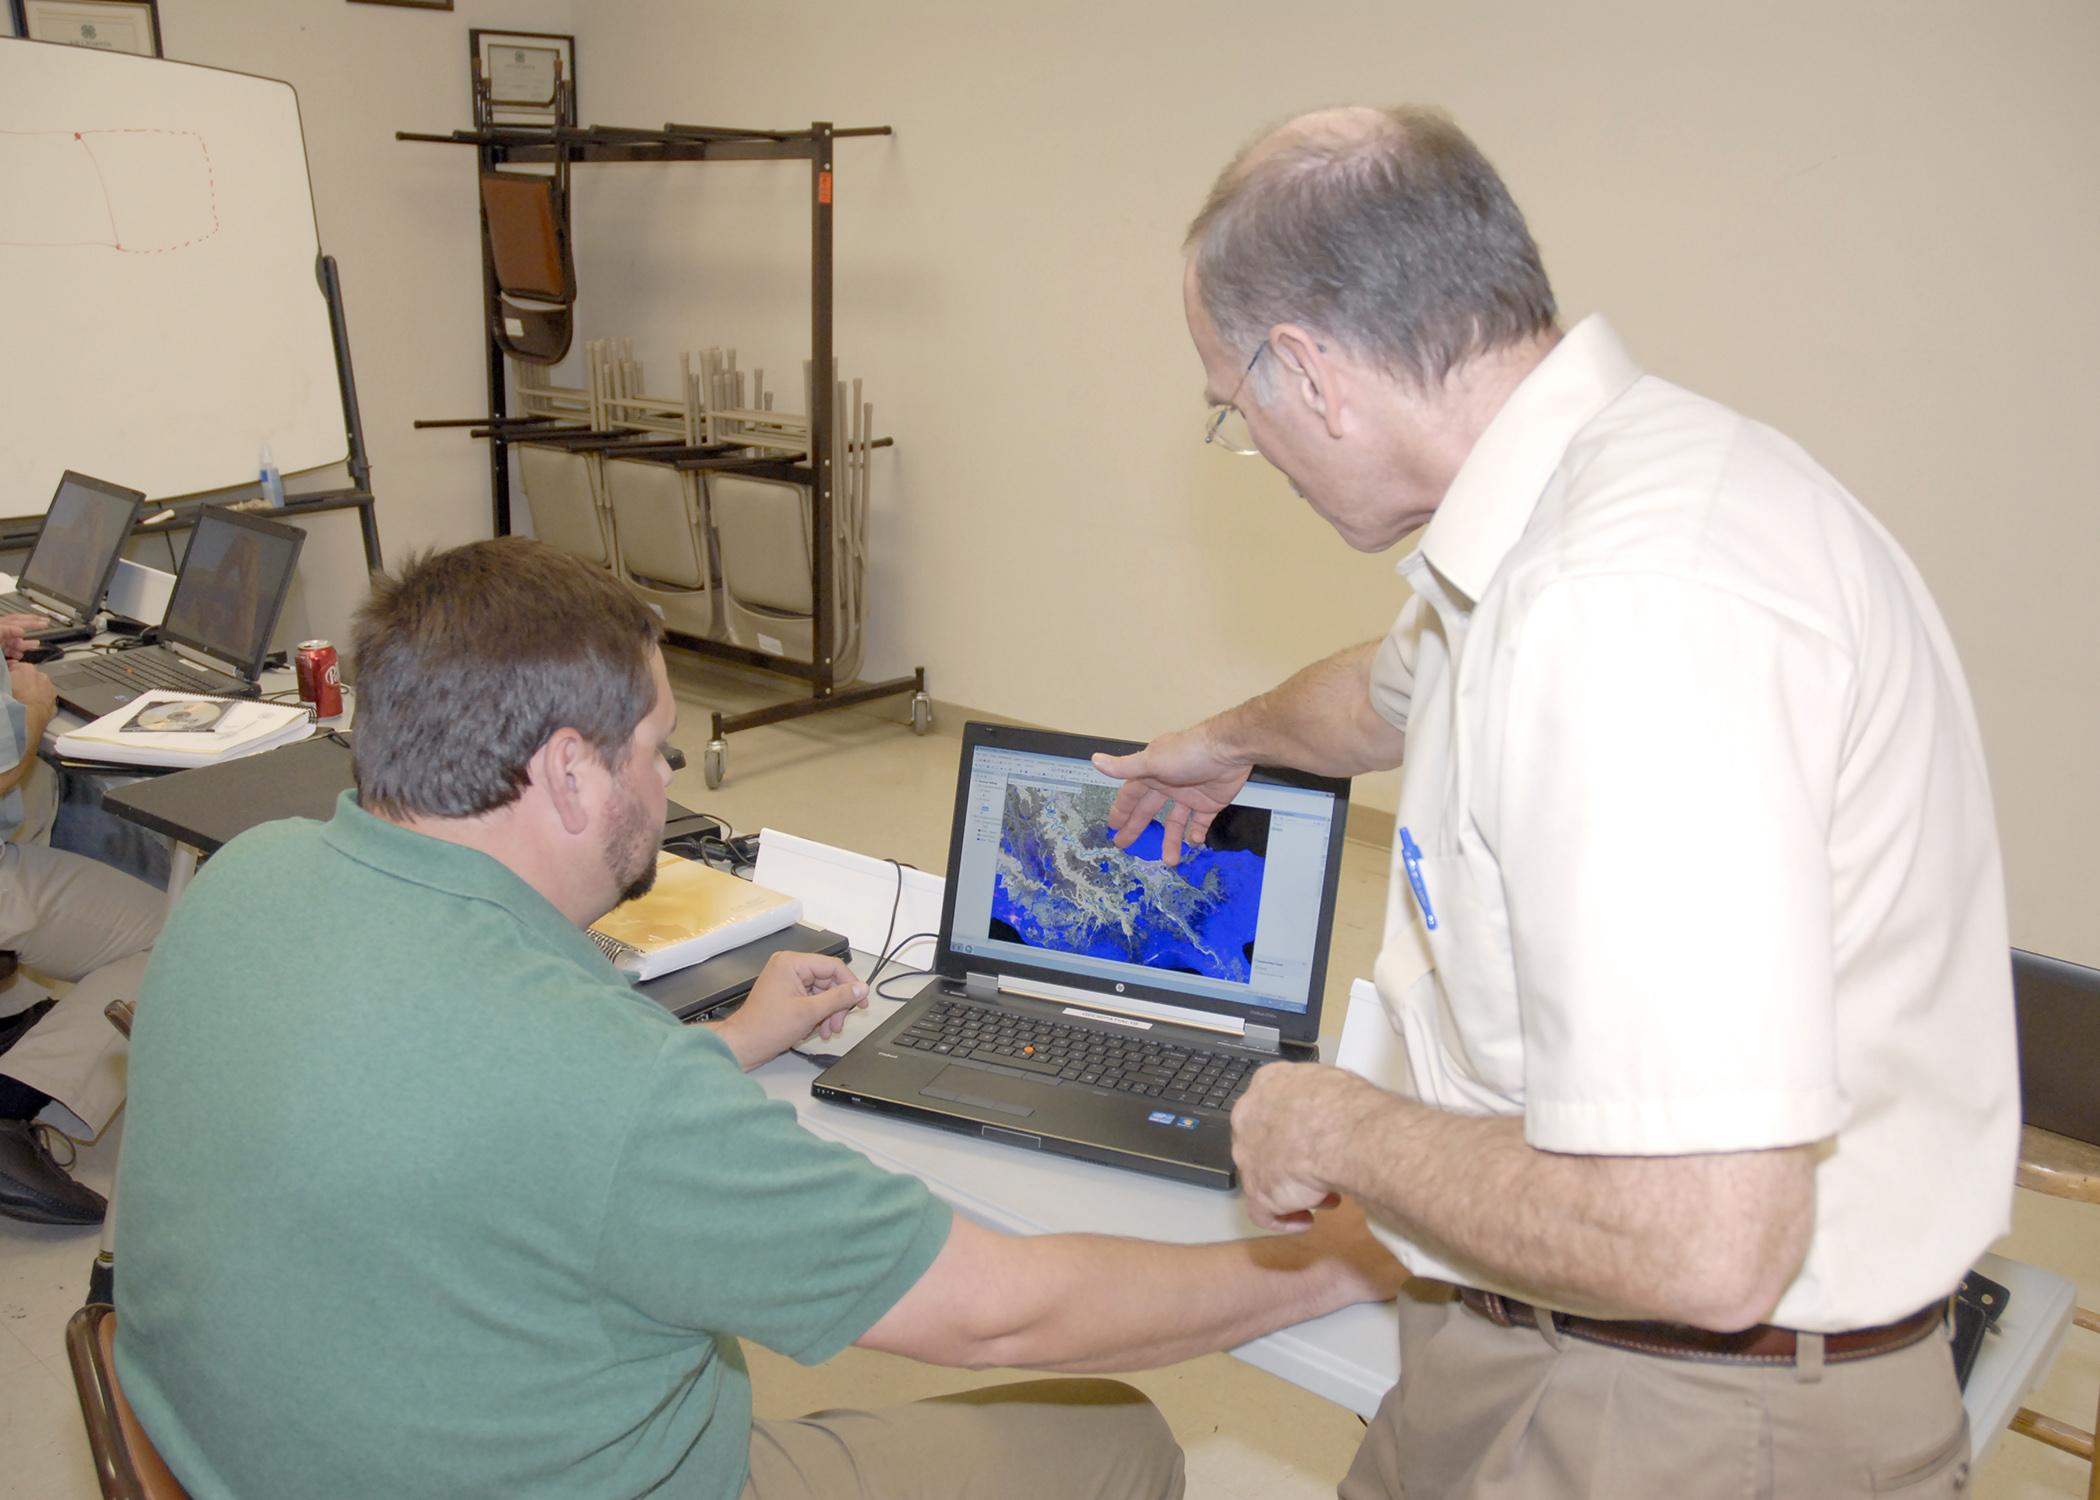 Jim Davis of Olive Branch, left, with the Mississippi Department of Transportation, learns how to use new software from Scott Samson, professor with the Extension Service and the Geosystems Research Institute at Mississippi State University, during a class in Hernando on Oct. 17, 2012. (Photo by MSU Ag Communications/Linda Breazeale)